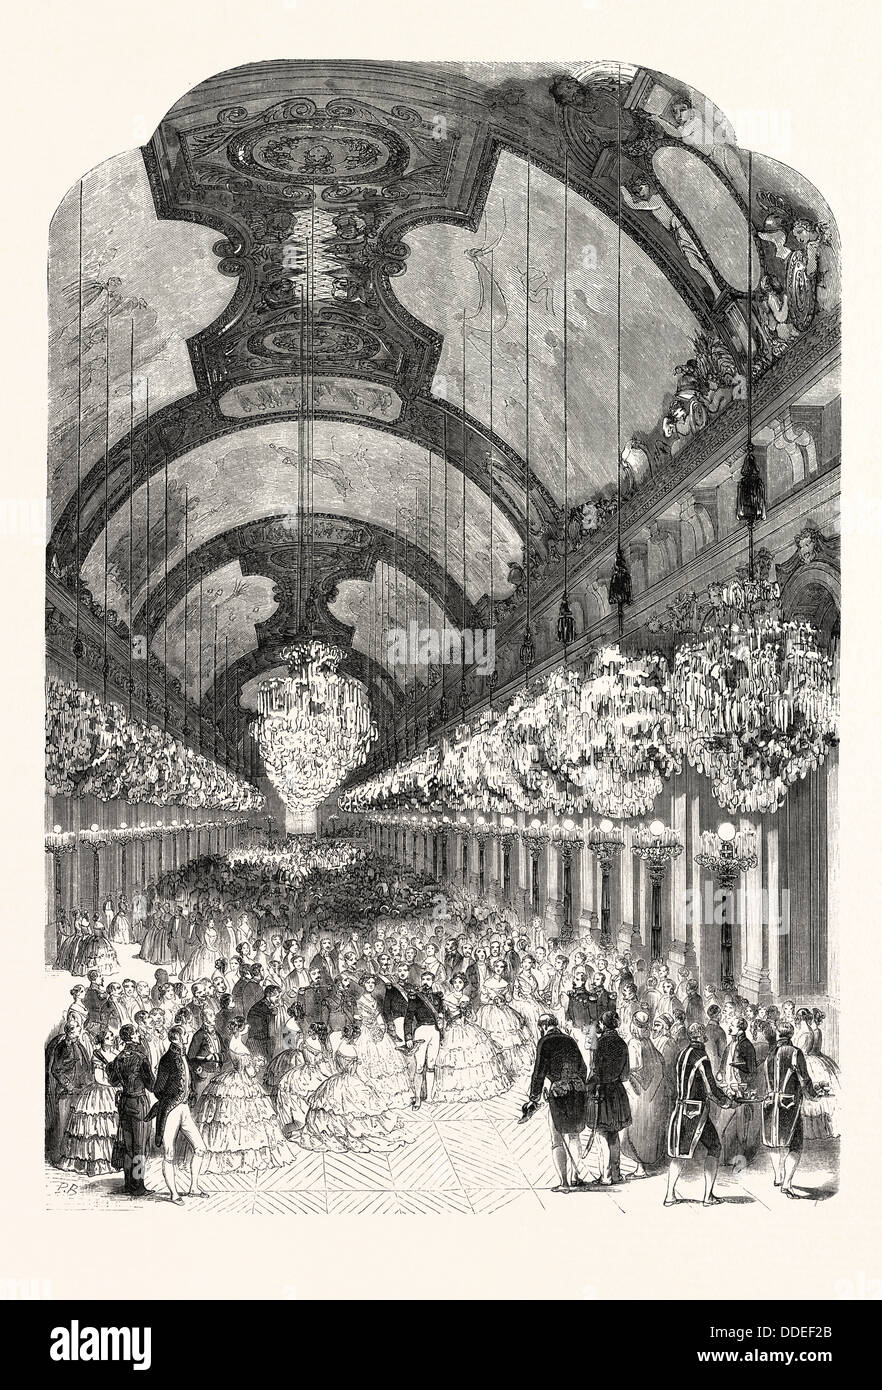 Entrance of LL. MM. Royals and Imperials in the Hall of Mirrors of the Palace of Versailles, August 25, 1855, France. - Stock Image